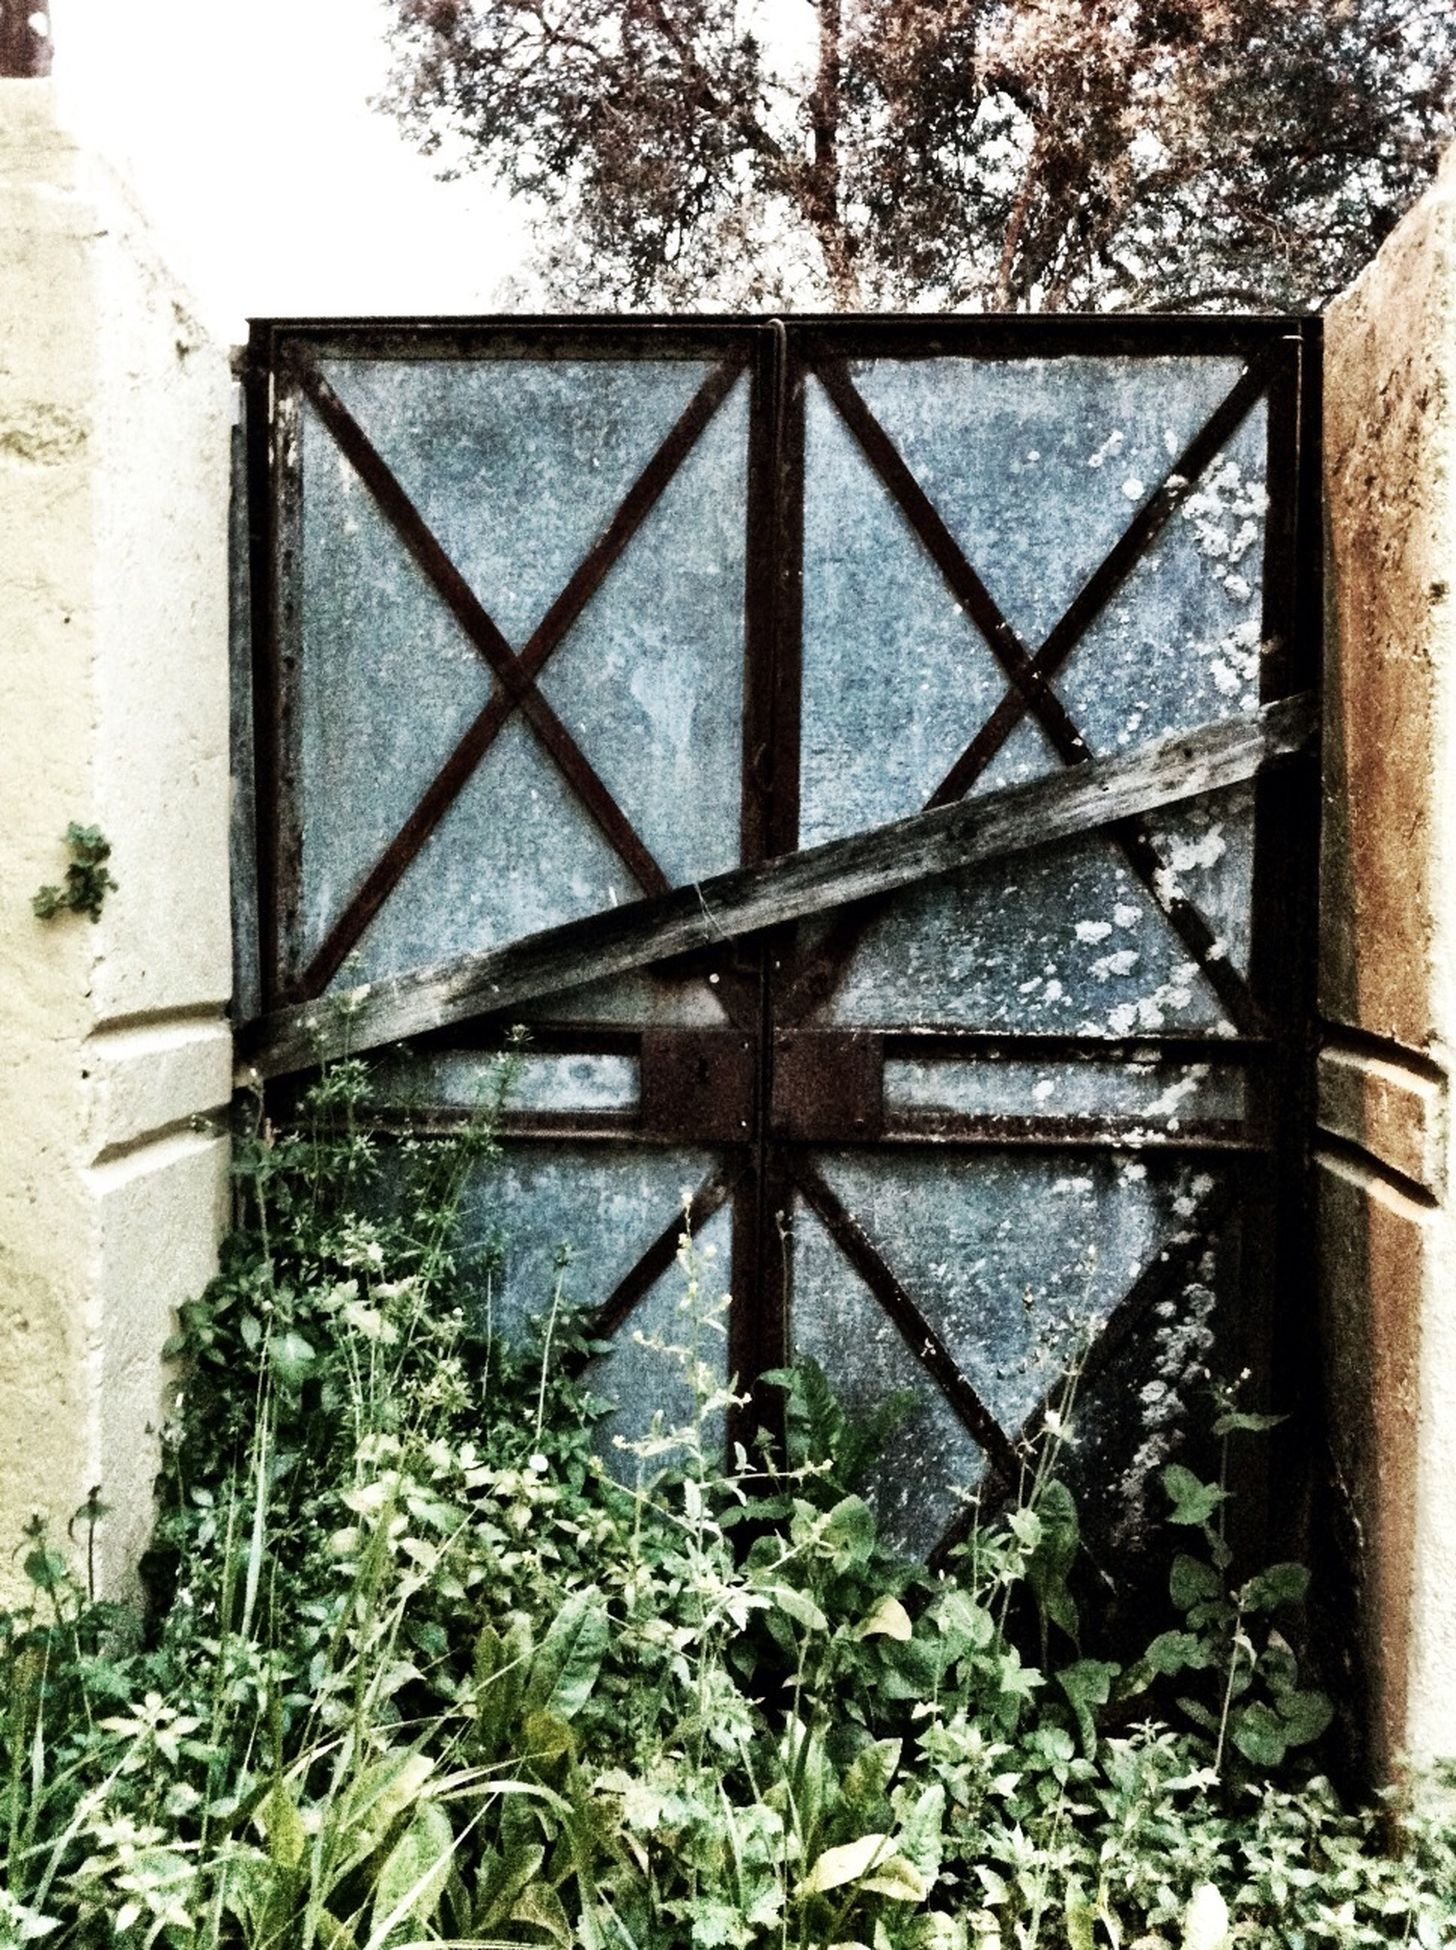 window, day, glass - material, full frame, wall, architecture, no people, pattern, built structure, damaged, glass, abandoned, old, indoors, backgrounds, abandoned, ruined, bad condition, deterioration, obsolete